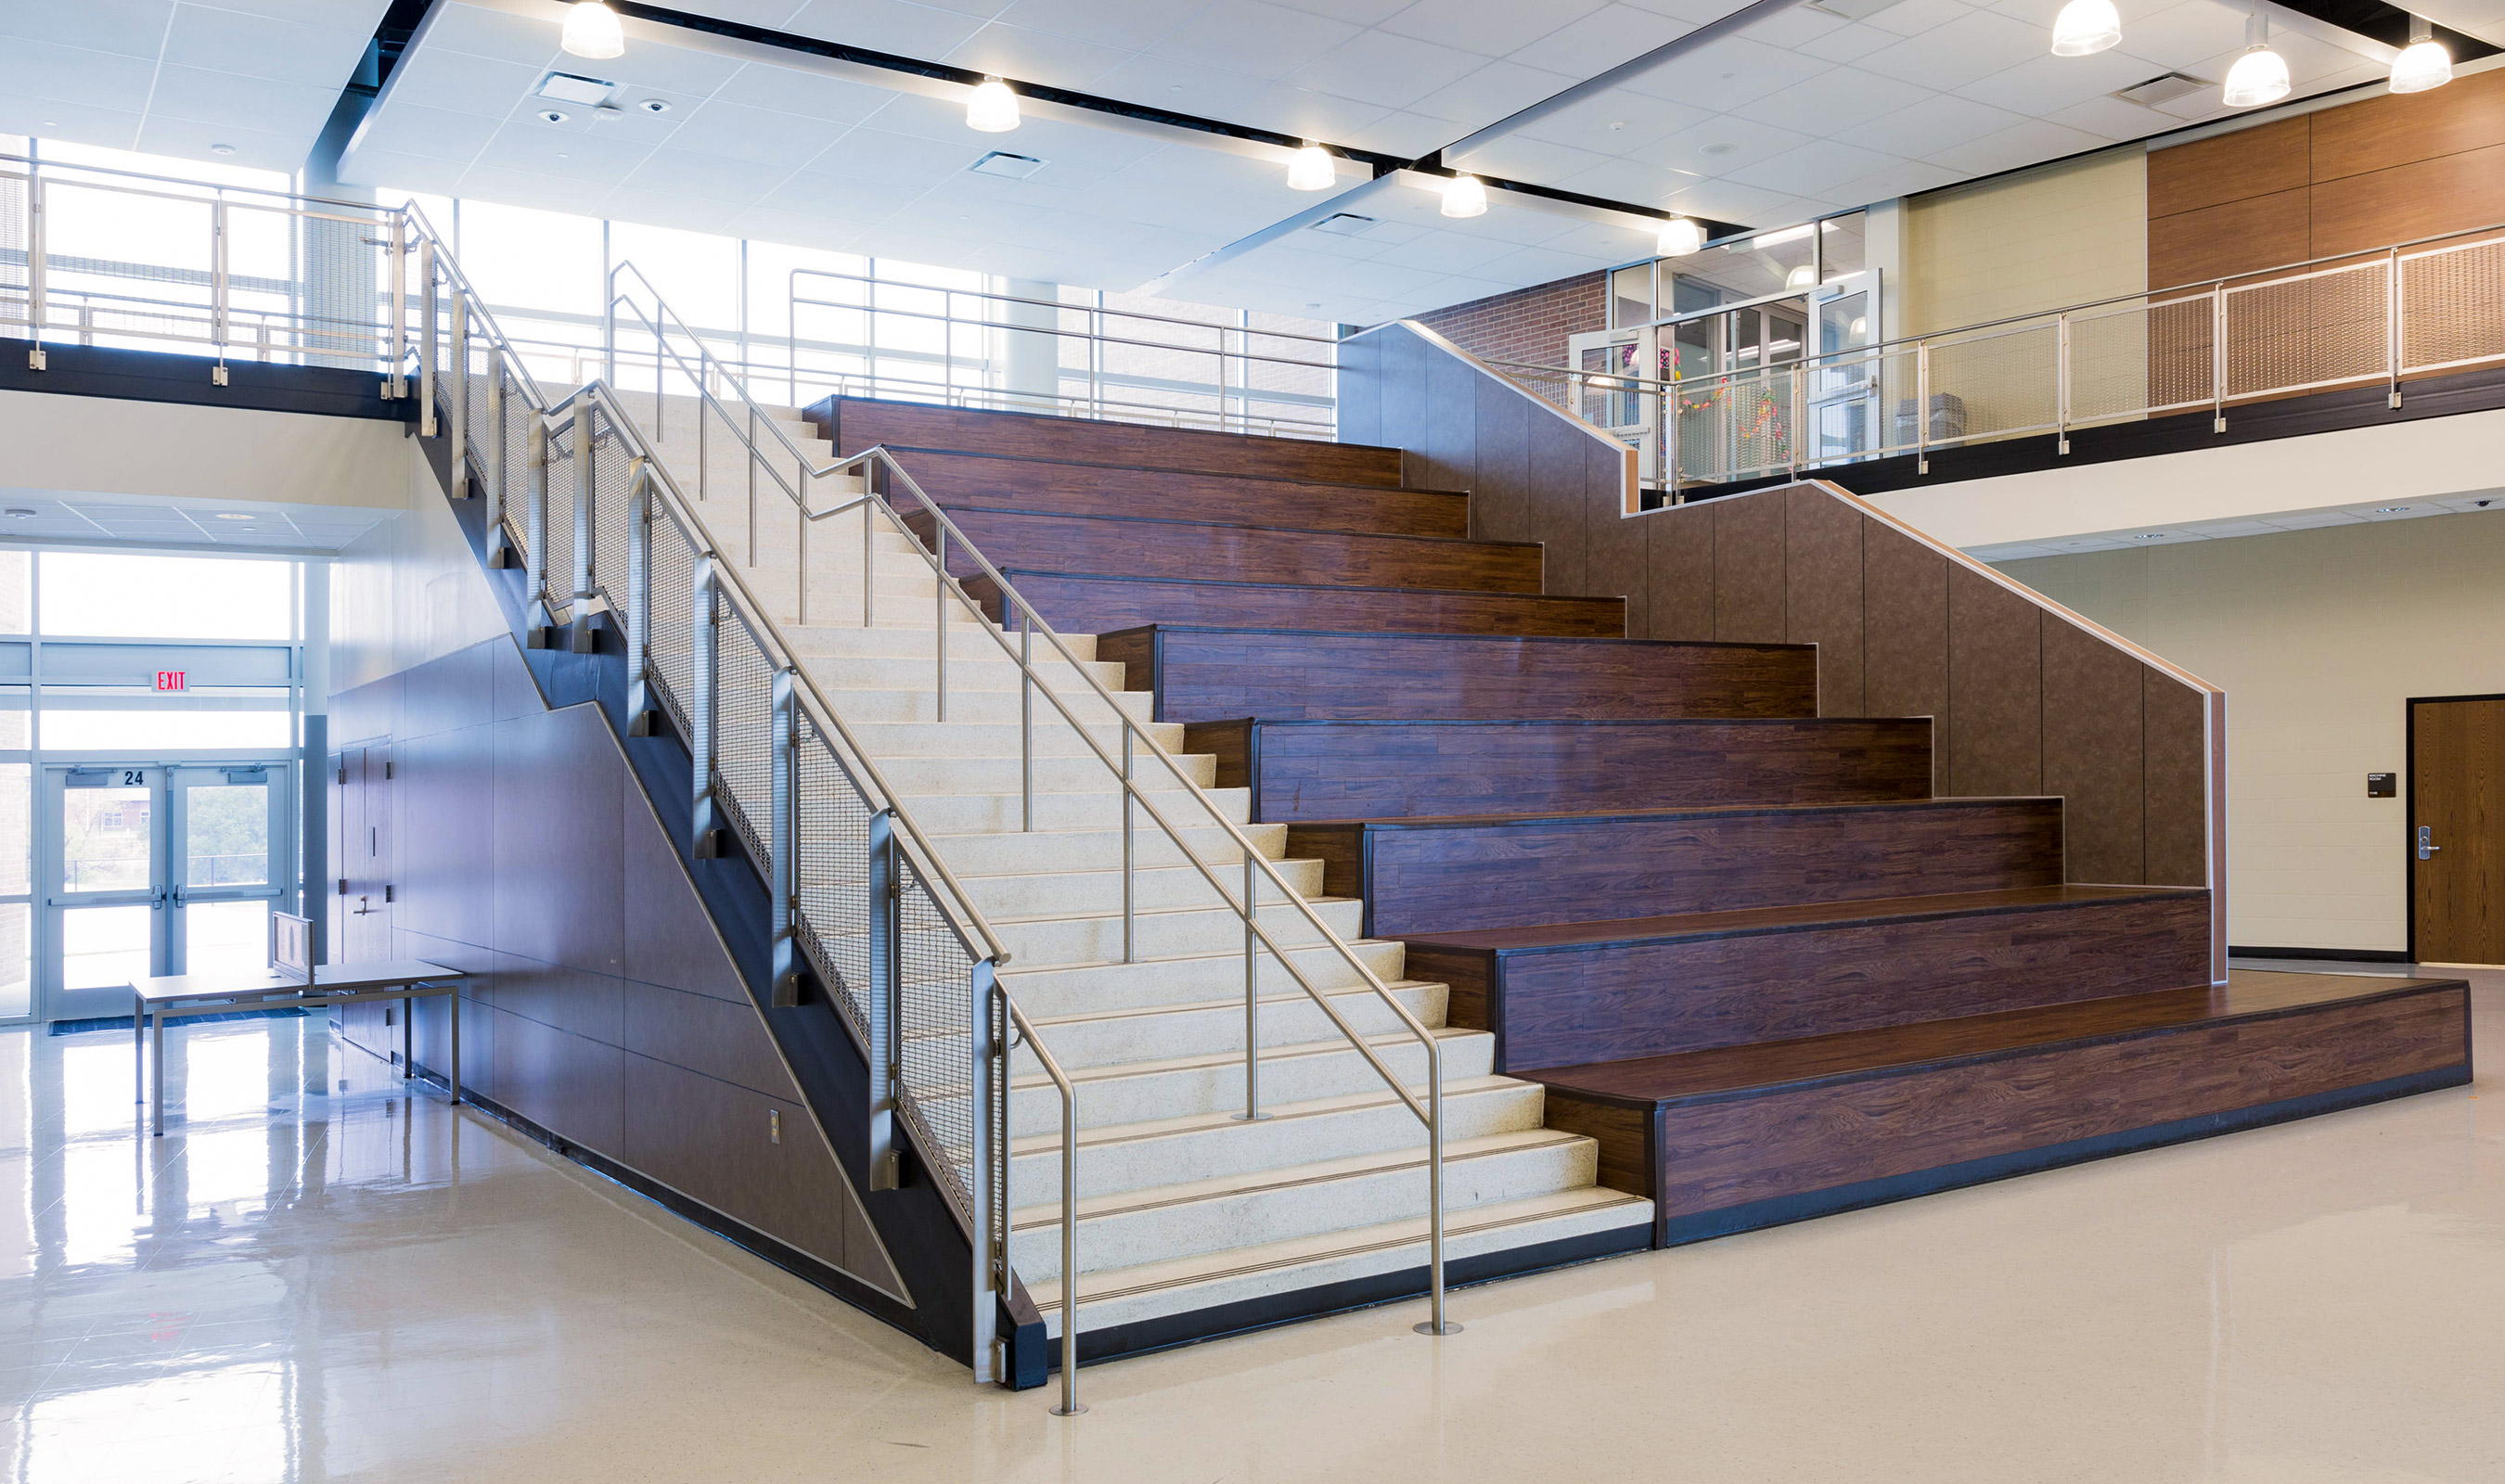 Banker Wire's woven wire mesh in stainless steel as railing infill on main stairs.